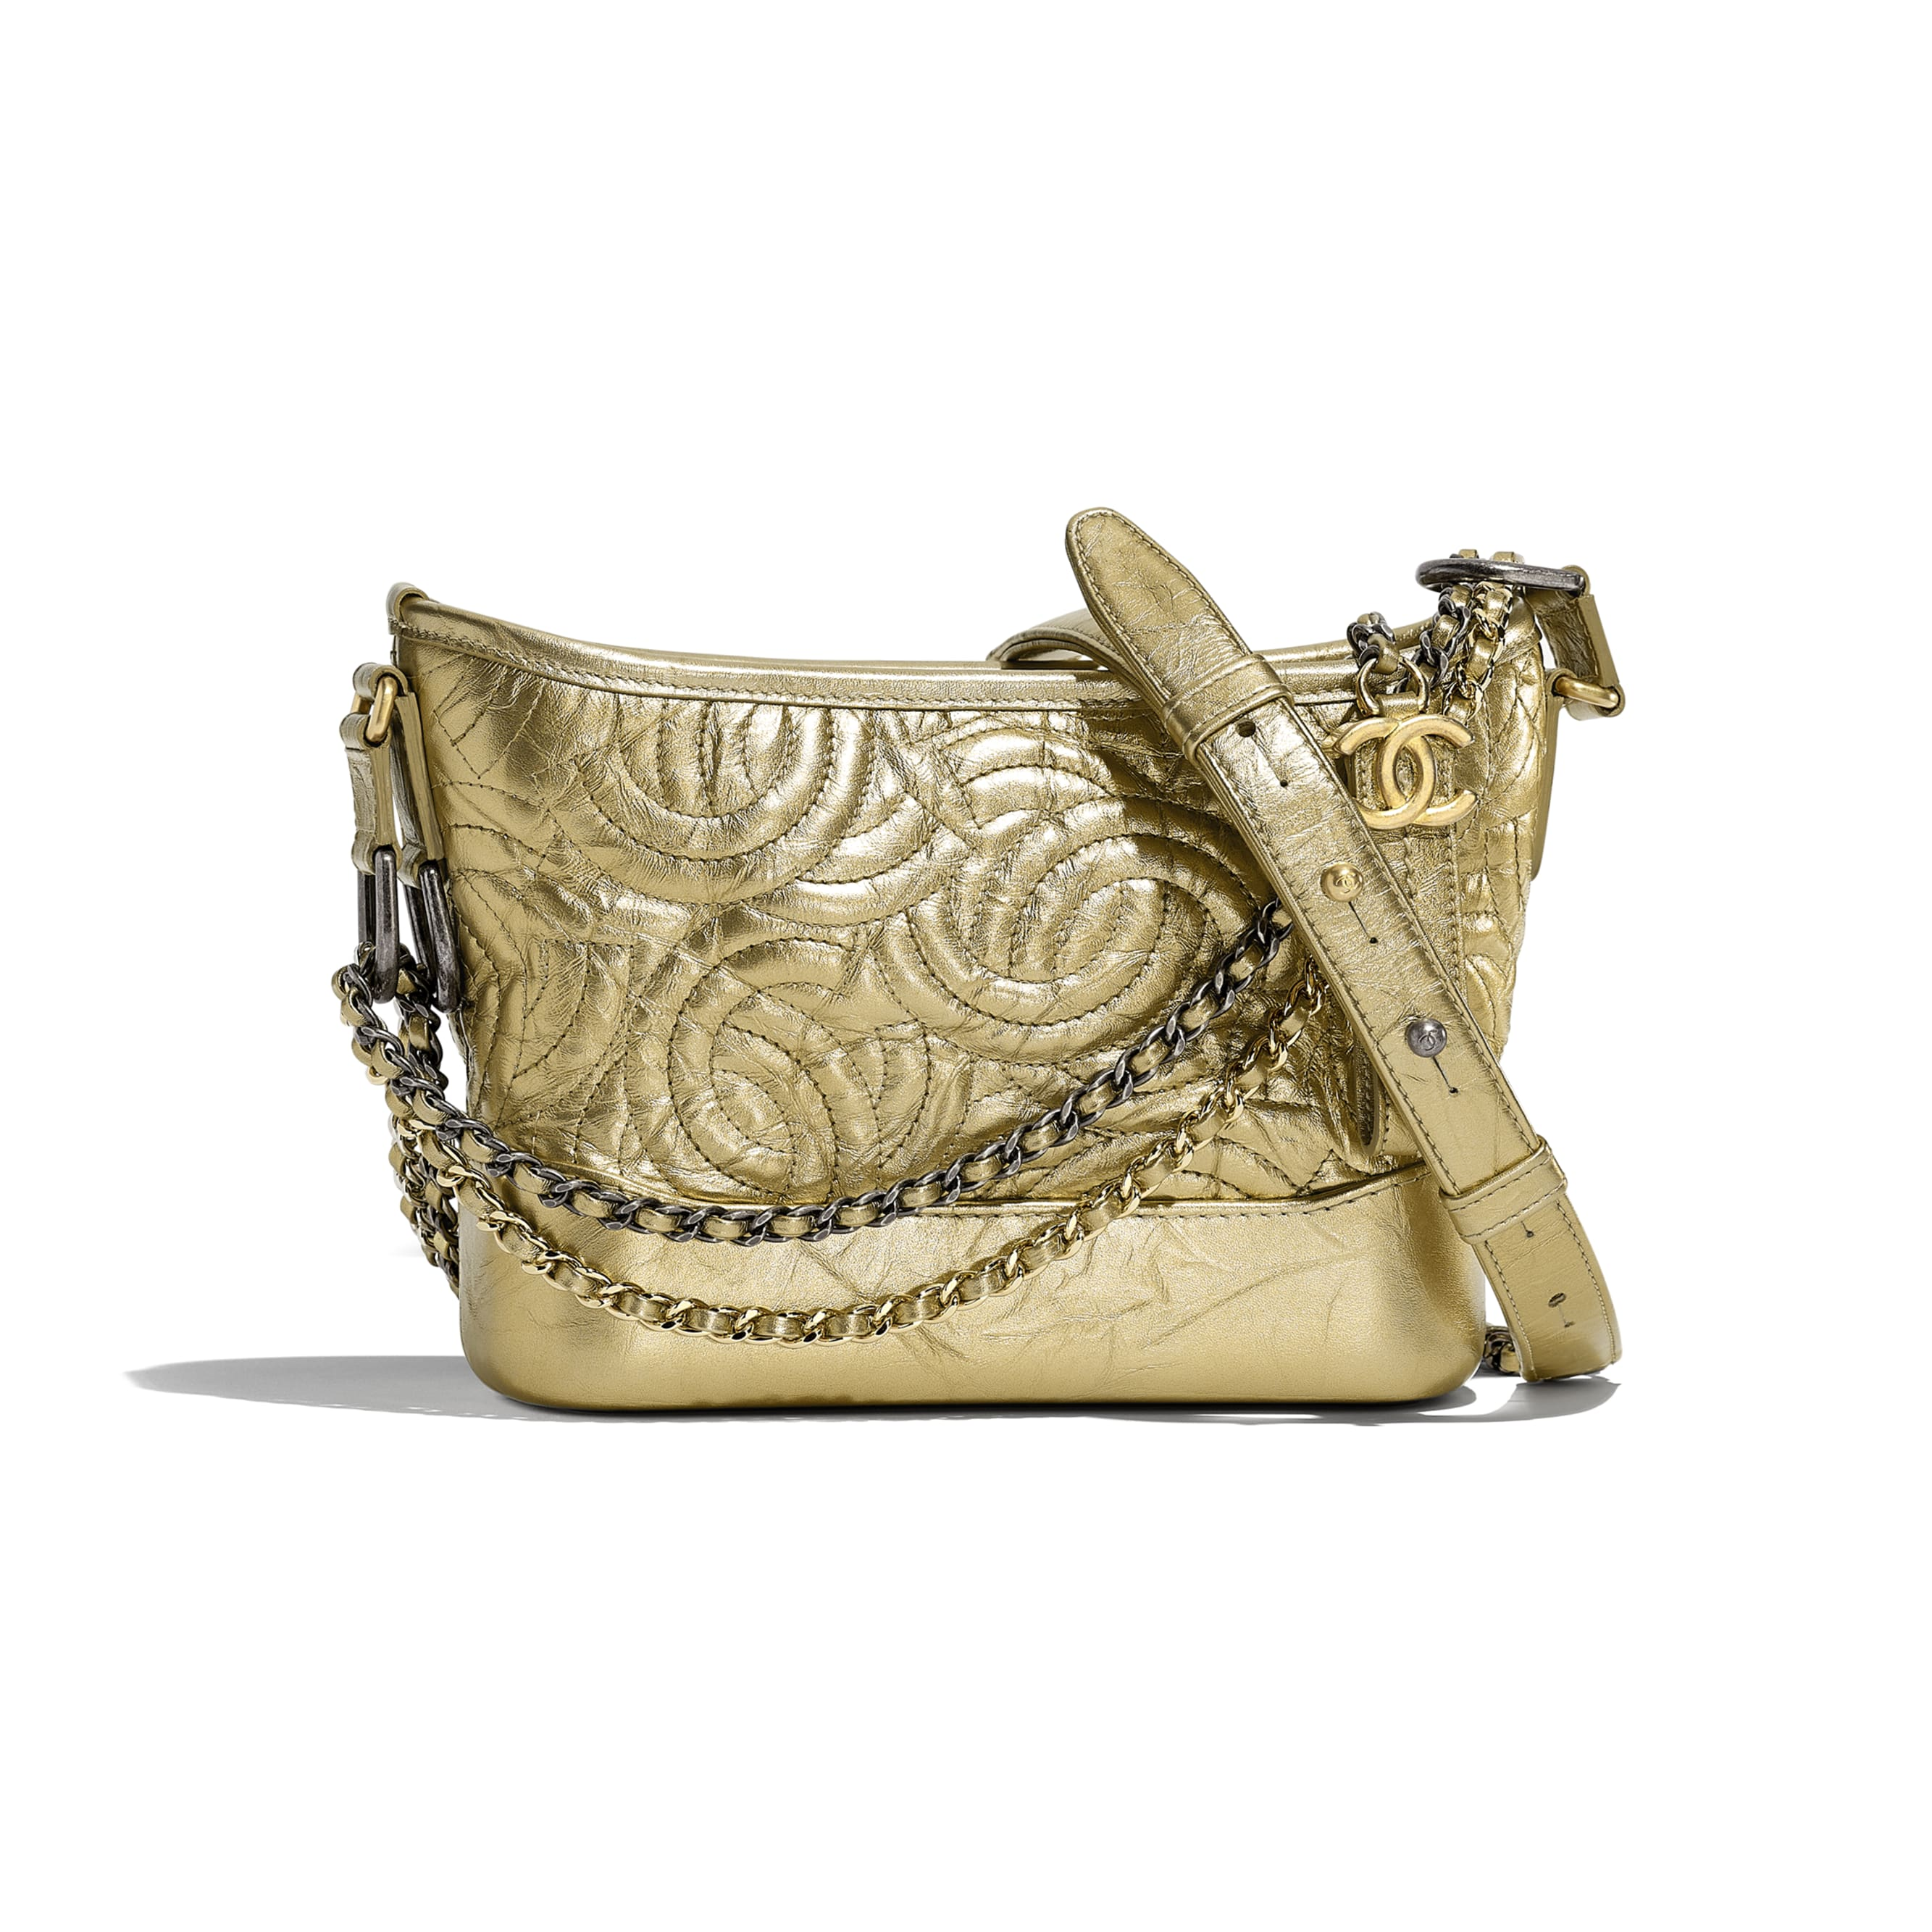 CHANEL'S GABRIELLE Small Hobo Bag - Gold - Calfskin, Silver-Tone & Gold-Tone Metal - CHANEL - Default view - see standard sized version